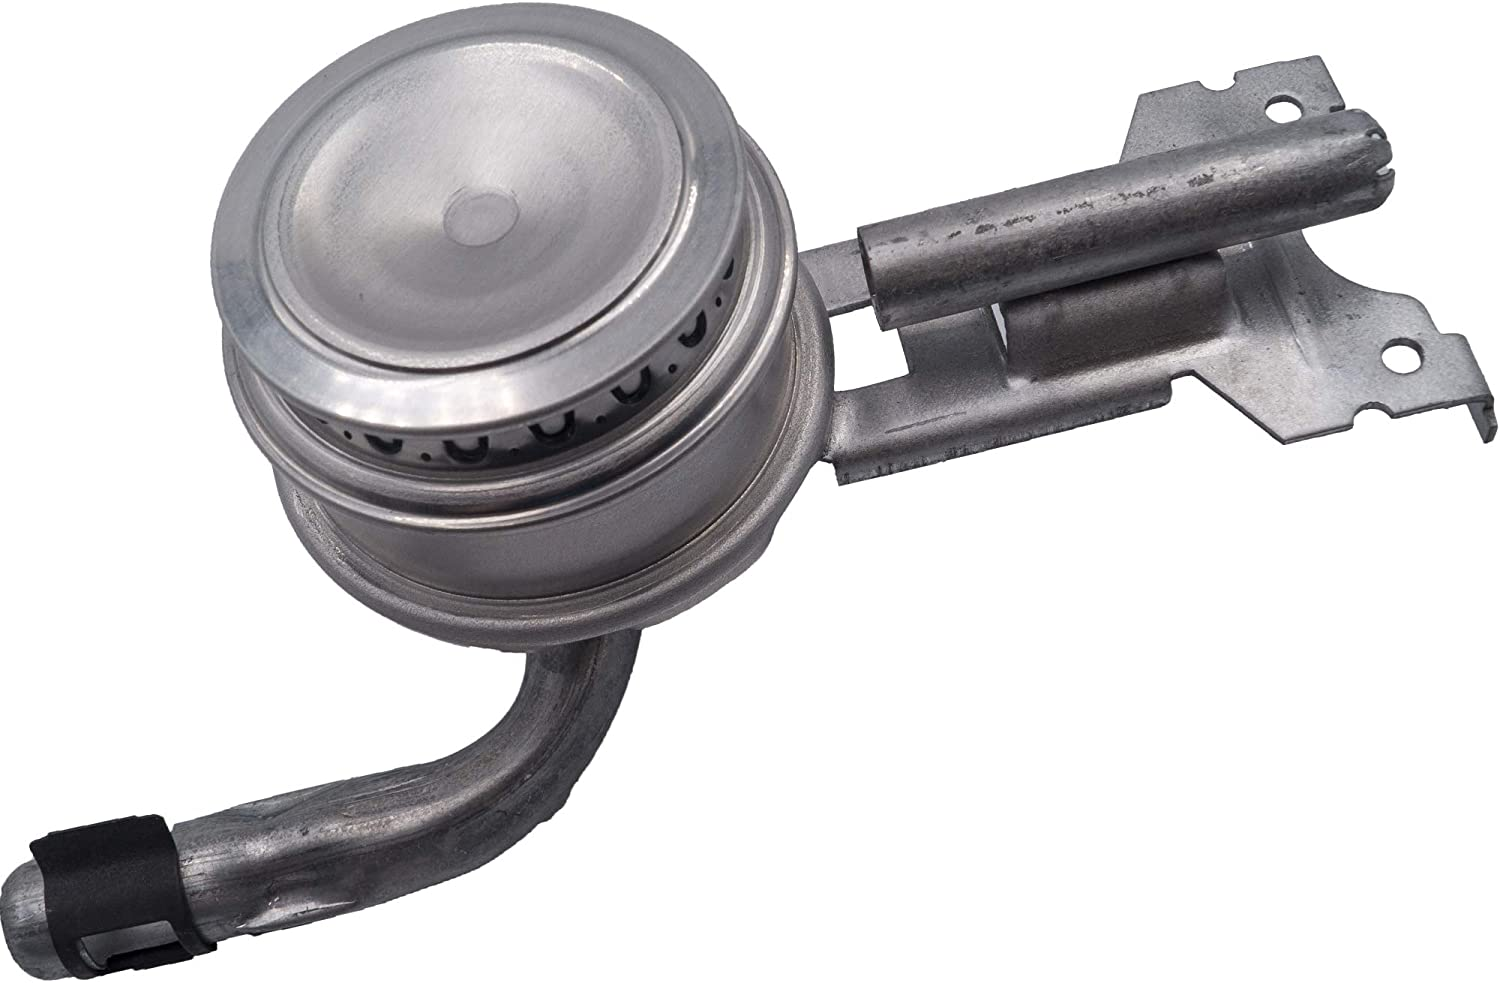 Supplying Demand 5304506427 Range Stove Oven Surface Burner Replaces 316039002, 316103802